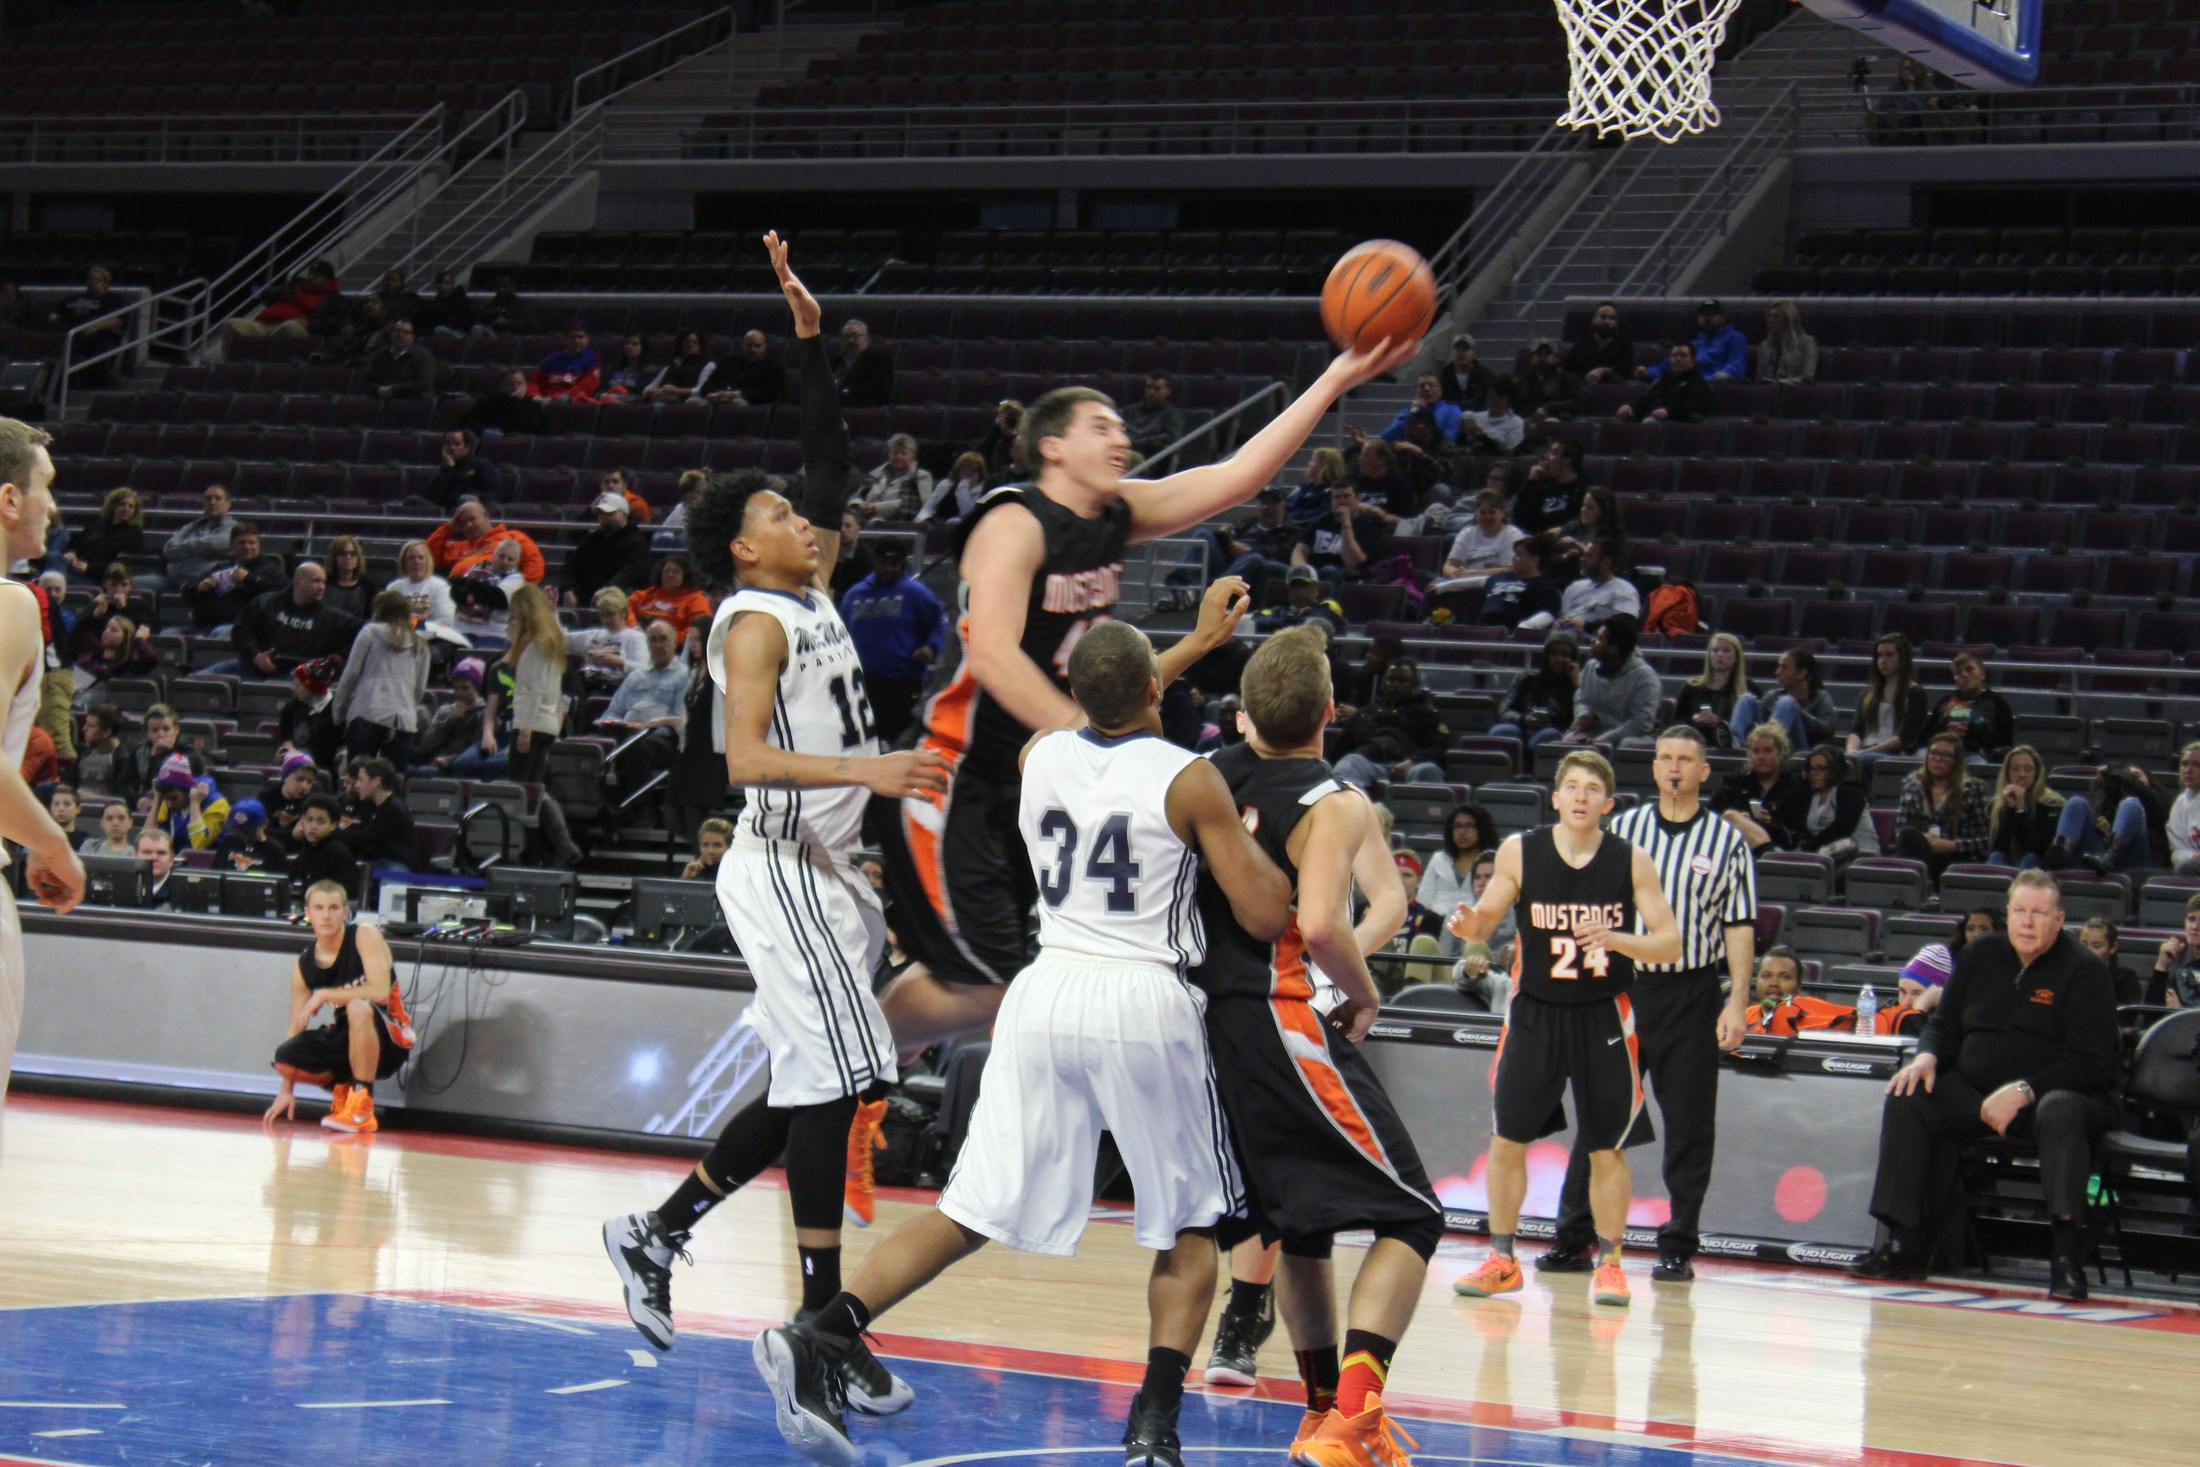 Action photo of boys varsity basketball game played at Palace of Auburn Hills